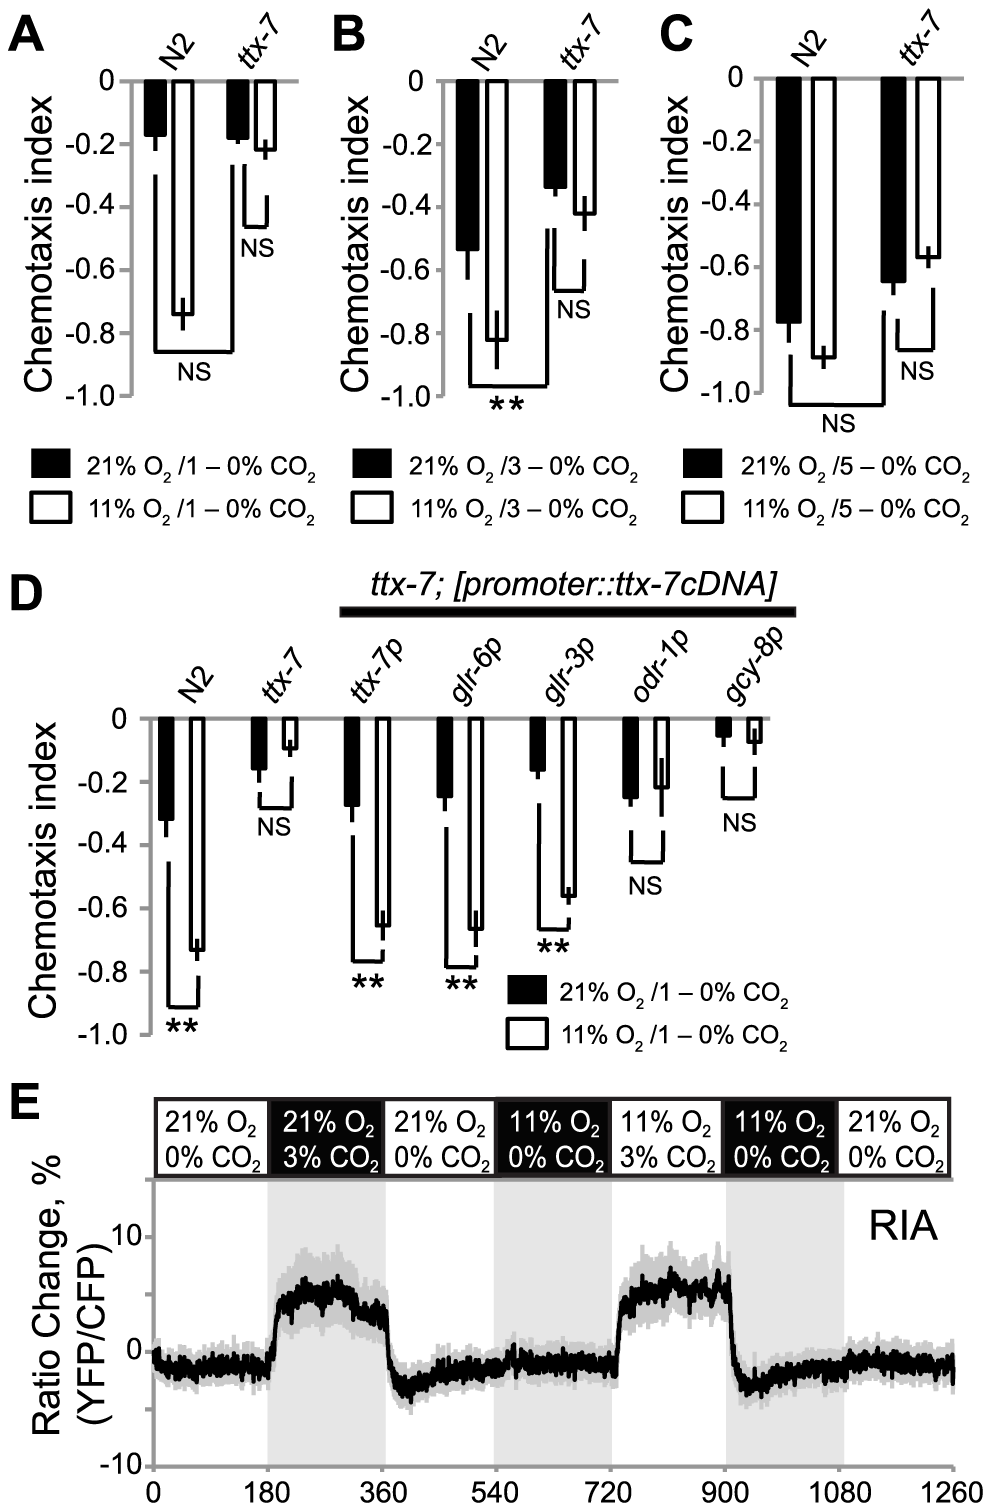 TTX-7 acts in RIA interneurons to promote CO<sub>2</sub> avoidance when ambient O<sub>2</sub> levels are low.